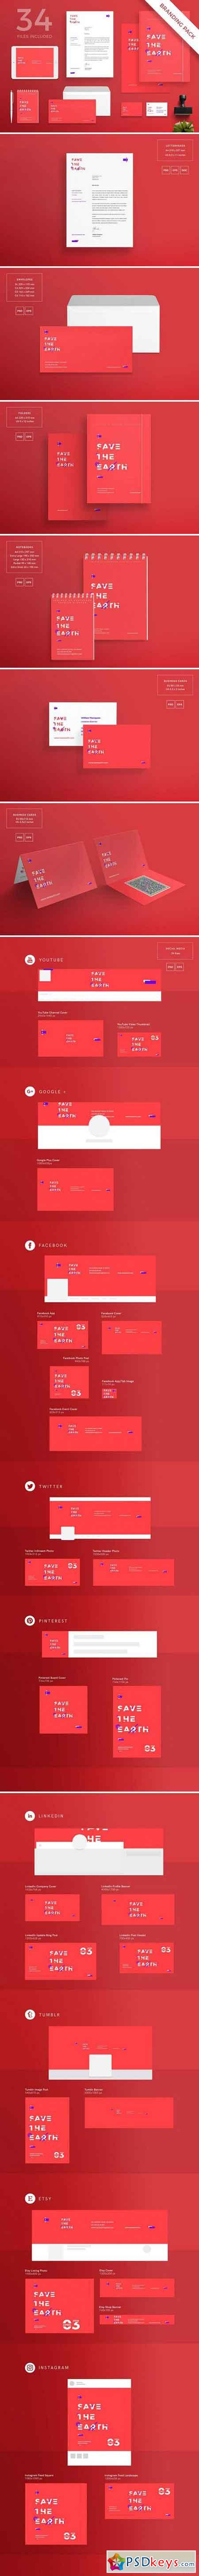 Branding Pack Save the Earth 1577200